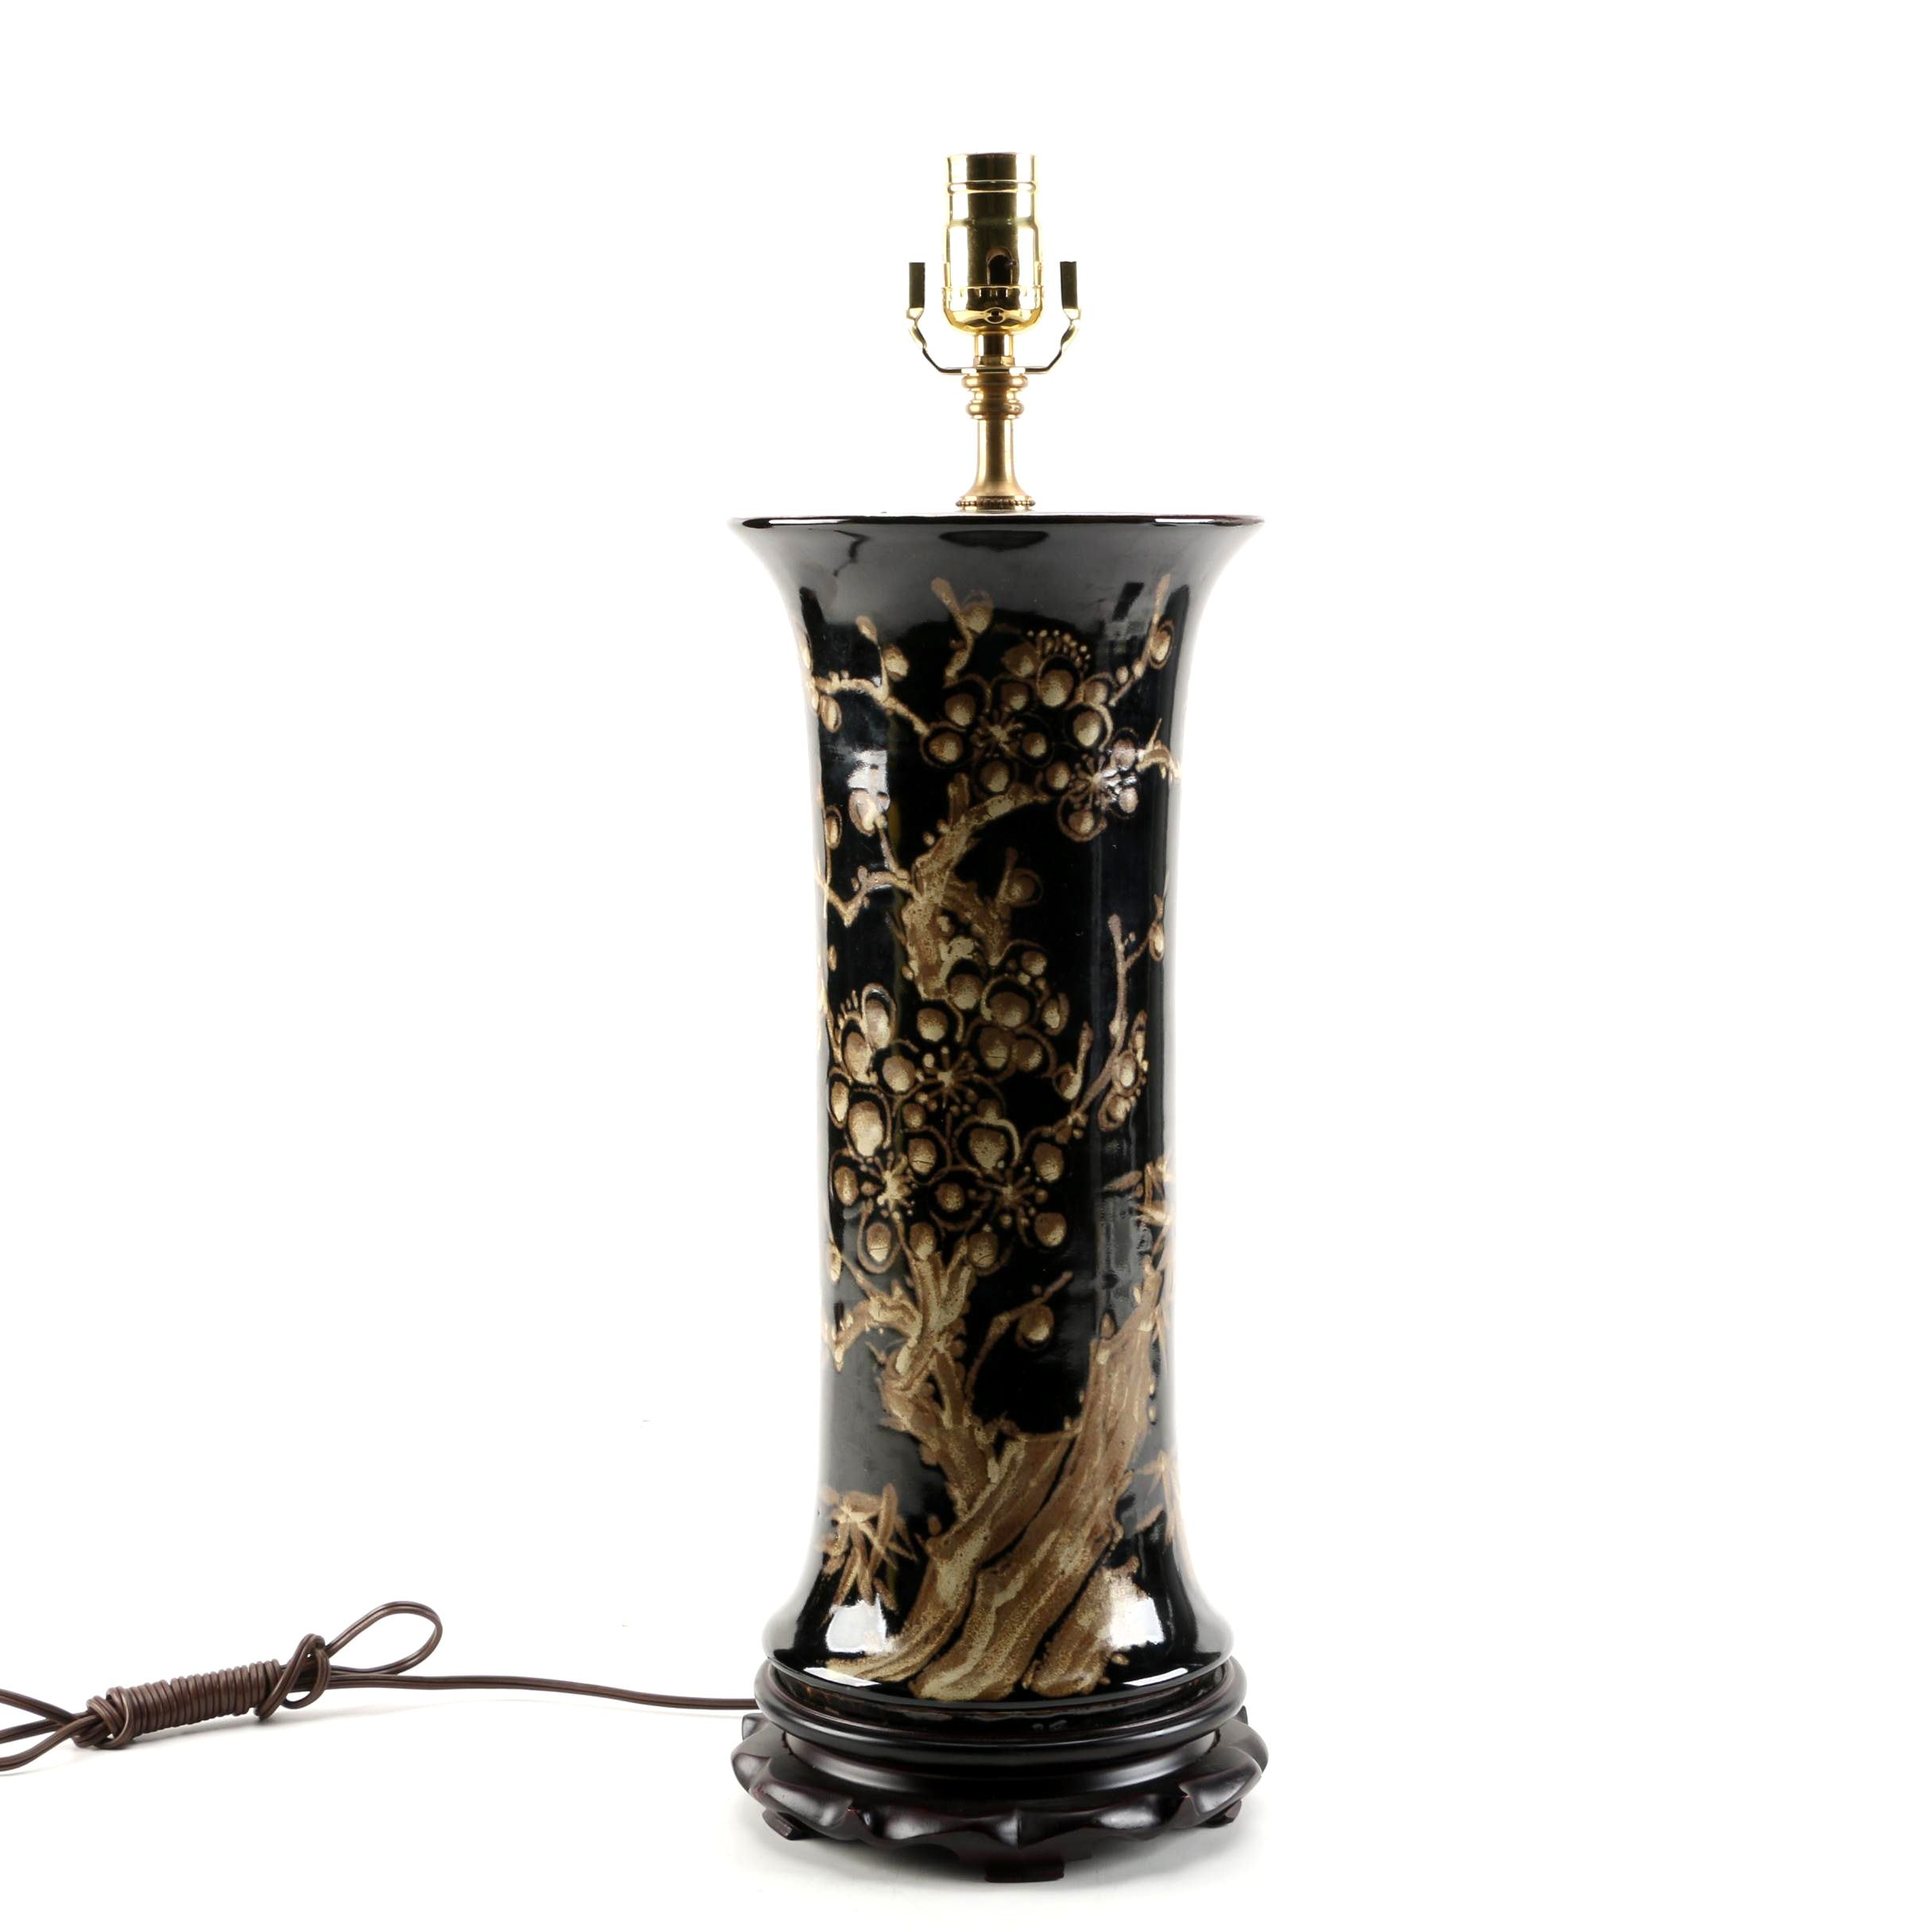 East Asian Vase Table Lamp with Cherry Blossom Motif